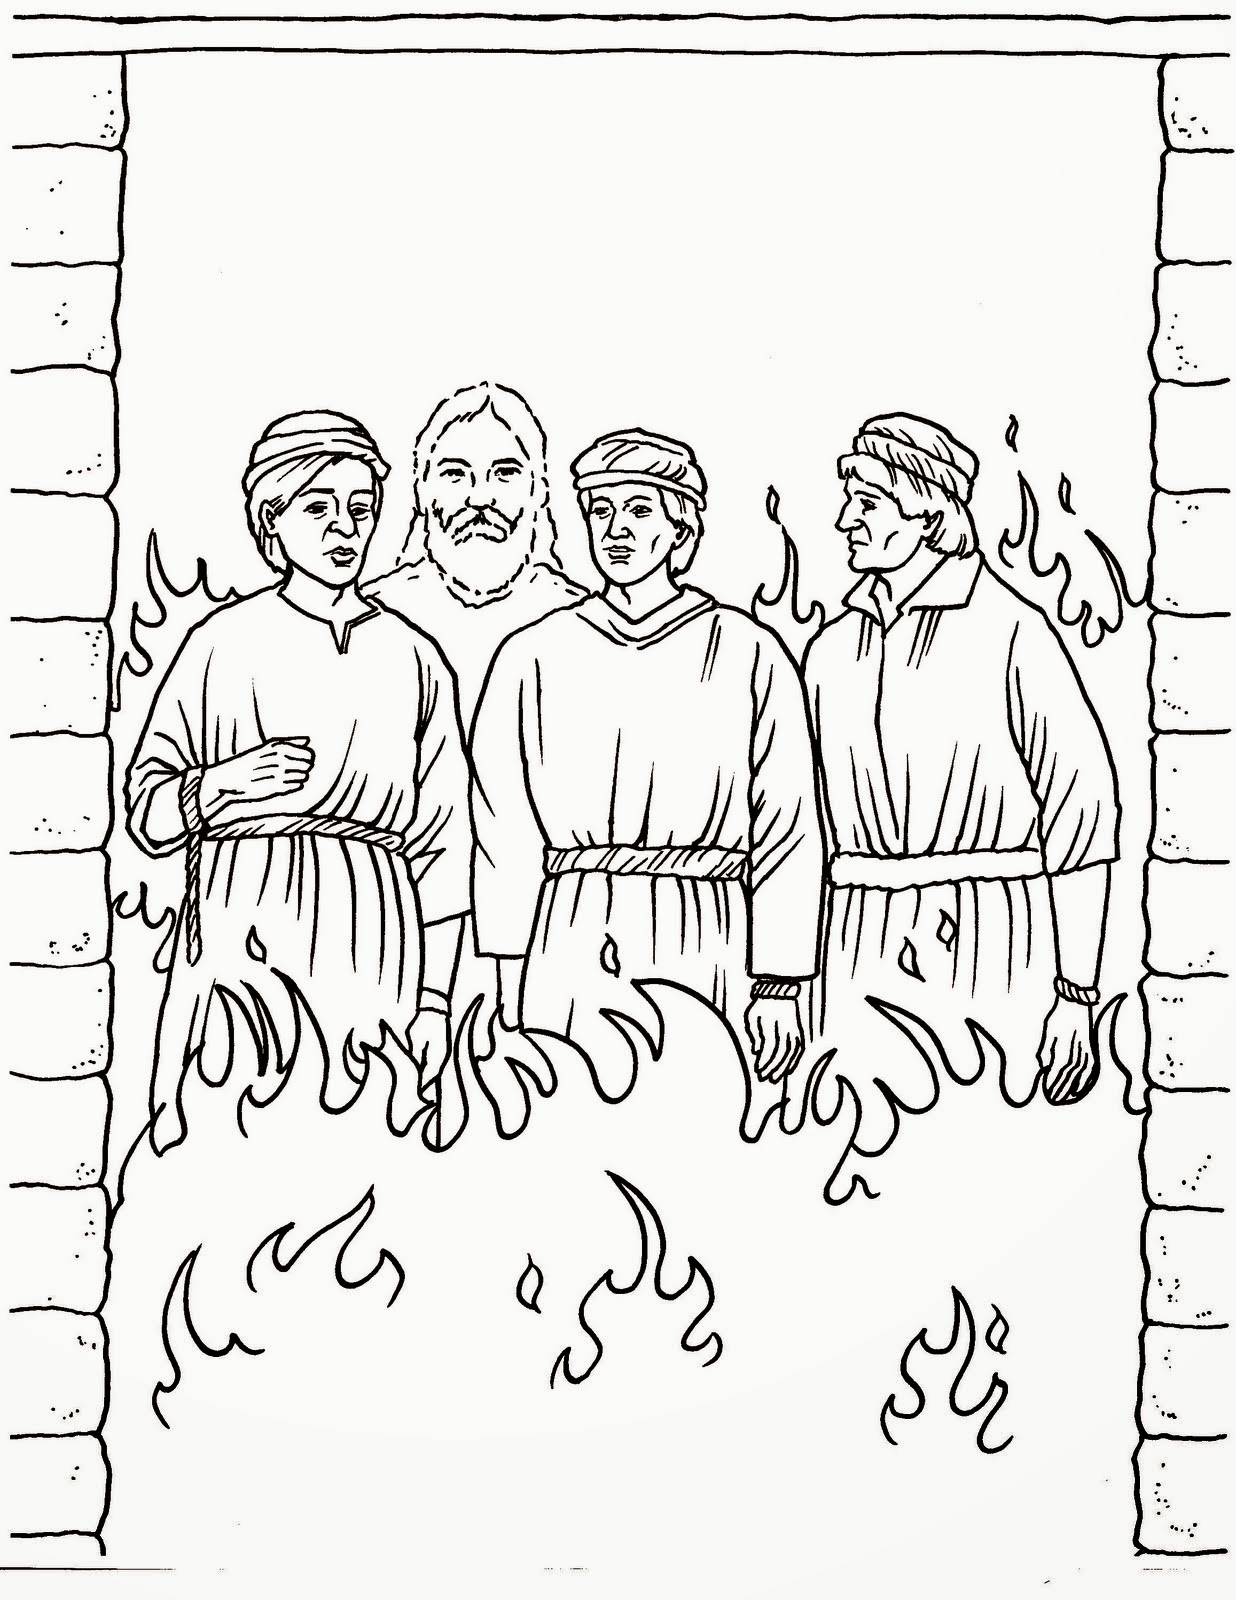 the fiery furnace coloring pages - photo#15